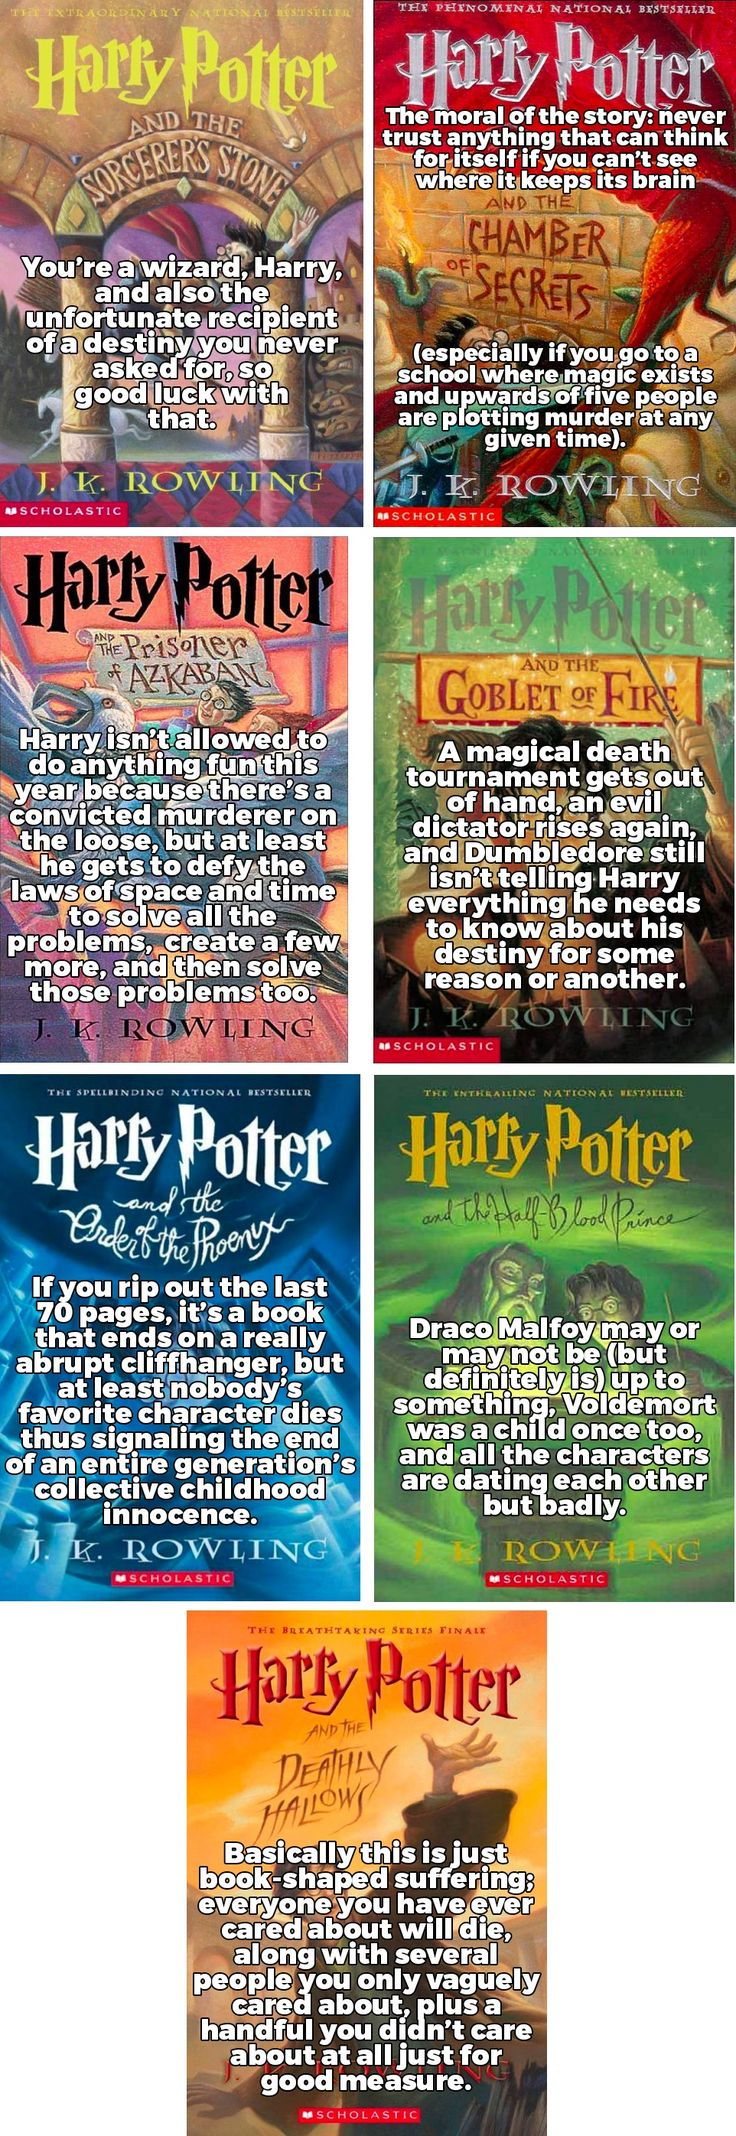 Every Harry Potter Book Summed Up in a Single Sentence. http://community.sparknotes.com/2017/11/24/every-harry-potter-book-summed-up-in-a-single-sentence/slide/1